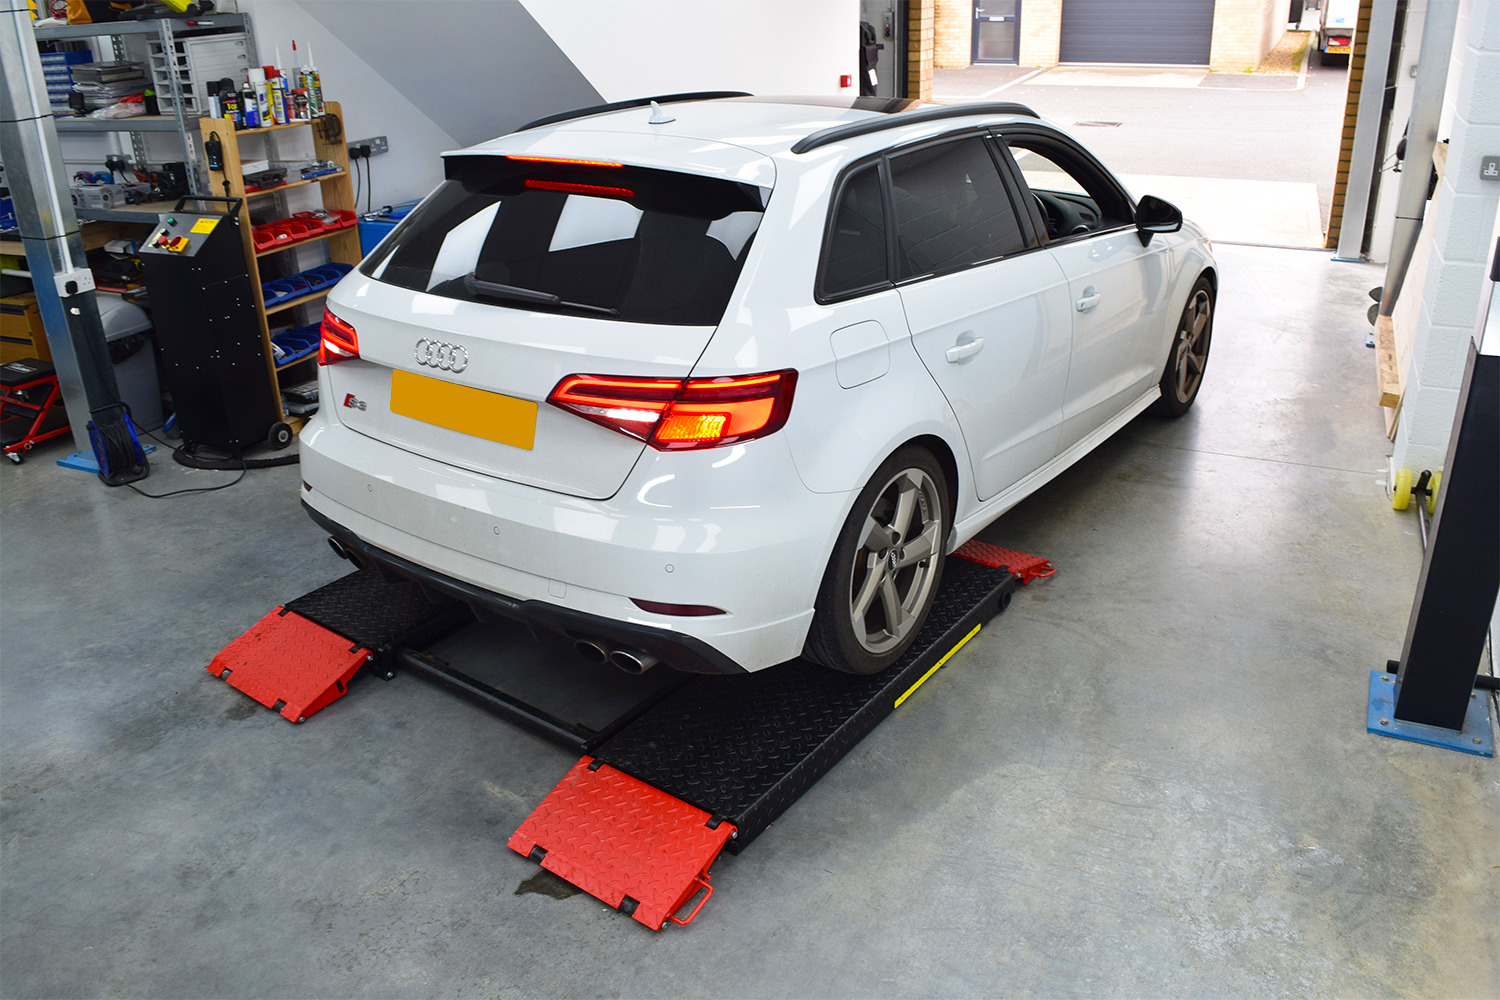 Audi S3 Drives on to AICT Ramp